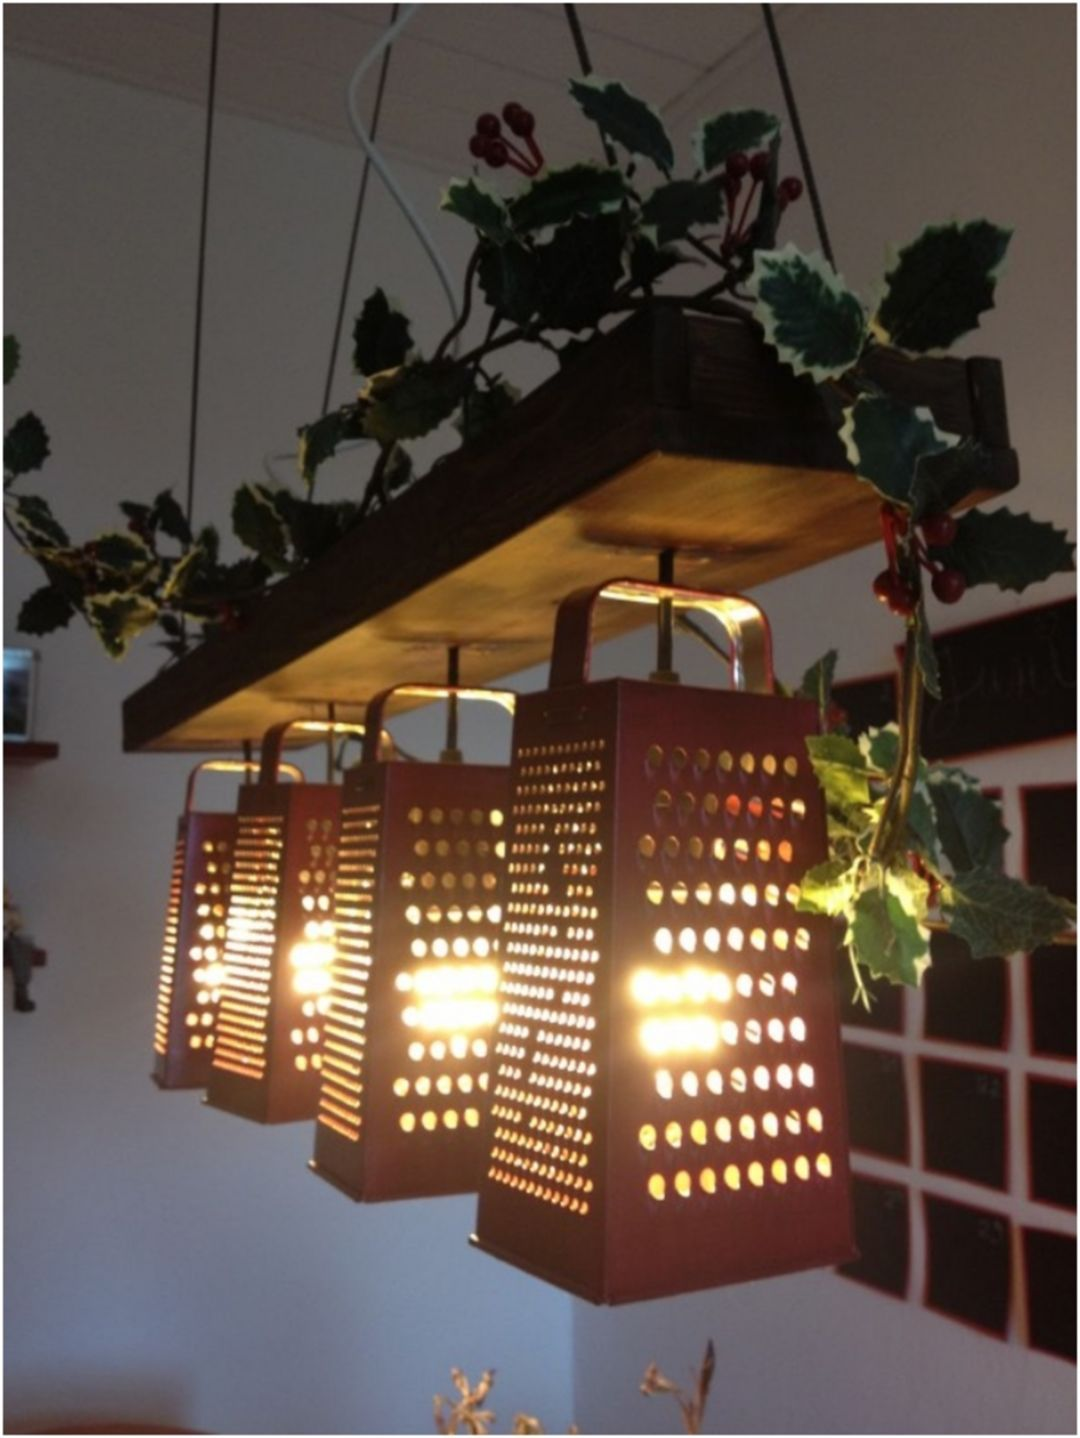 10 Amazing Diy Home Lighting Ideas You Must Try Teracee Diy Lamp Upcycled Home Decor Kitchen Decor Themes